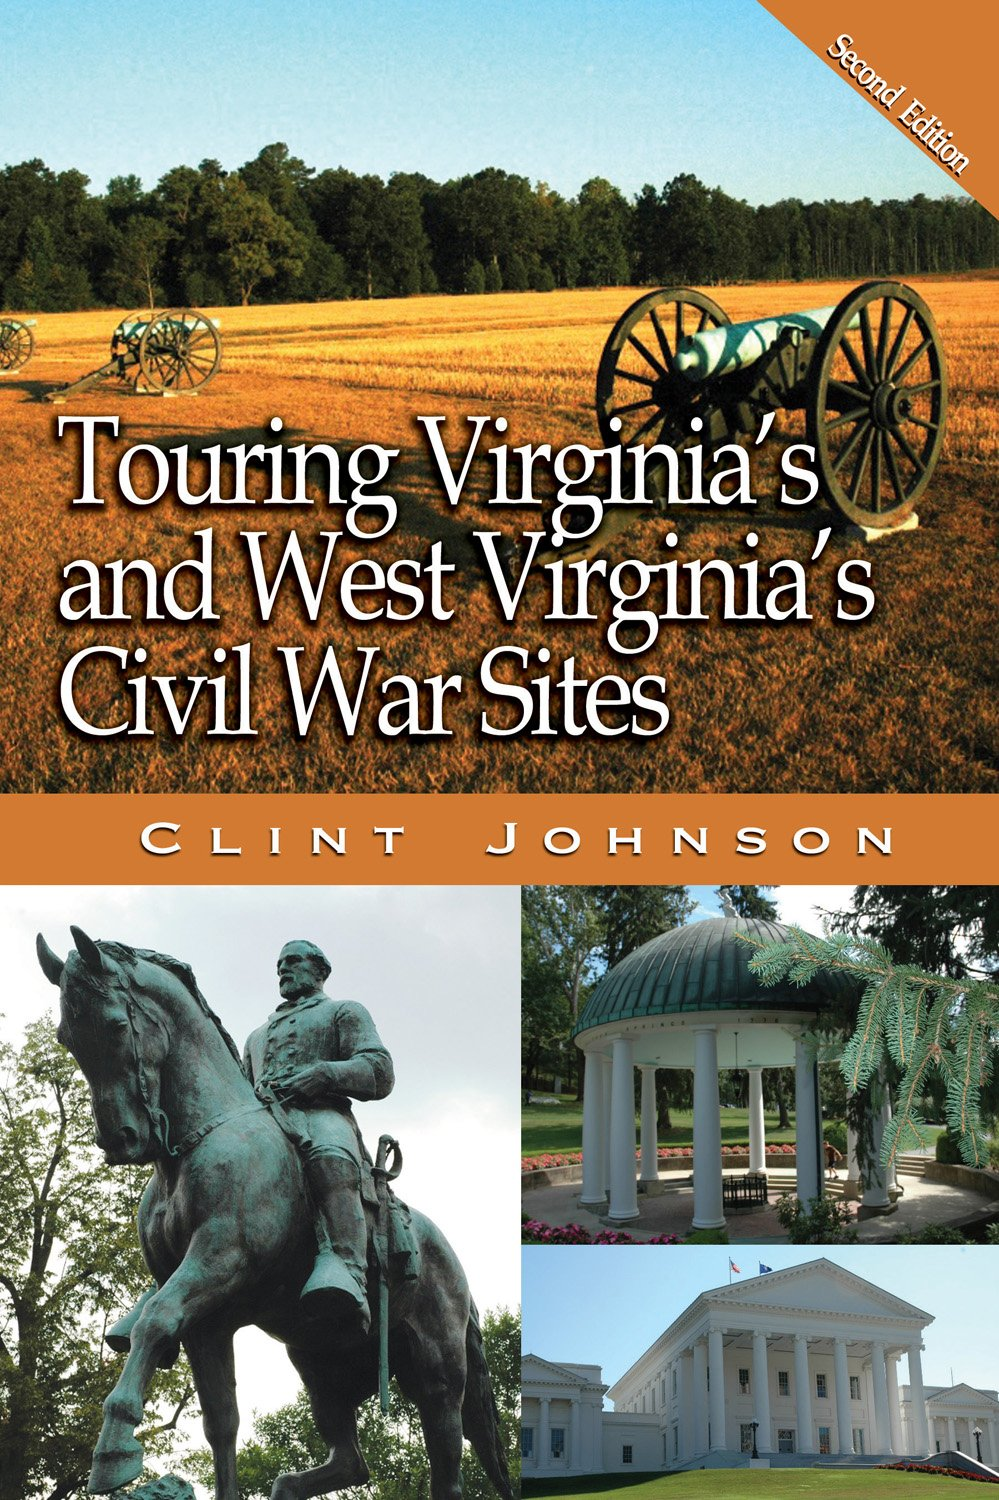 Download Touring Virginia's and West Virginia's Civil War Sites (Touring the Backroads) PDF